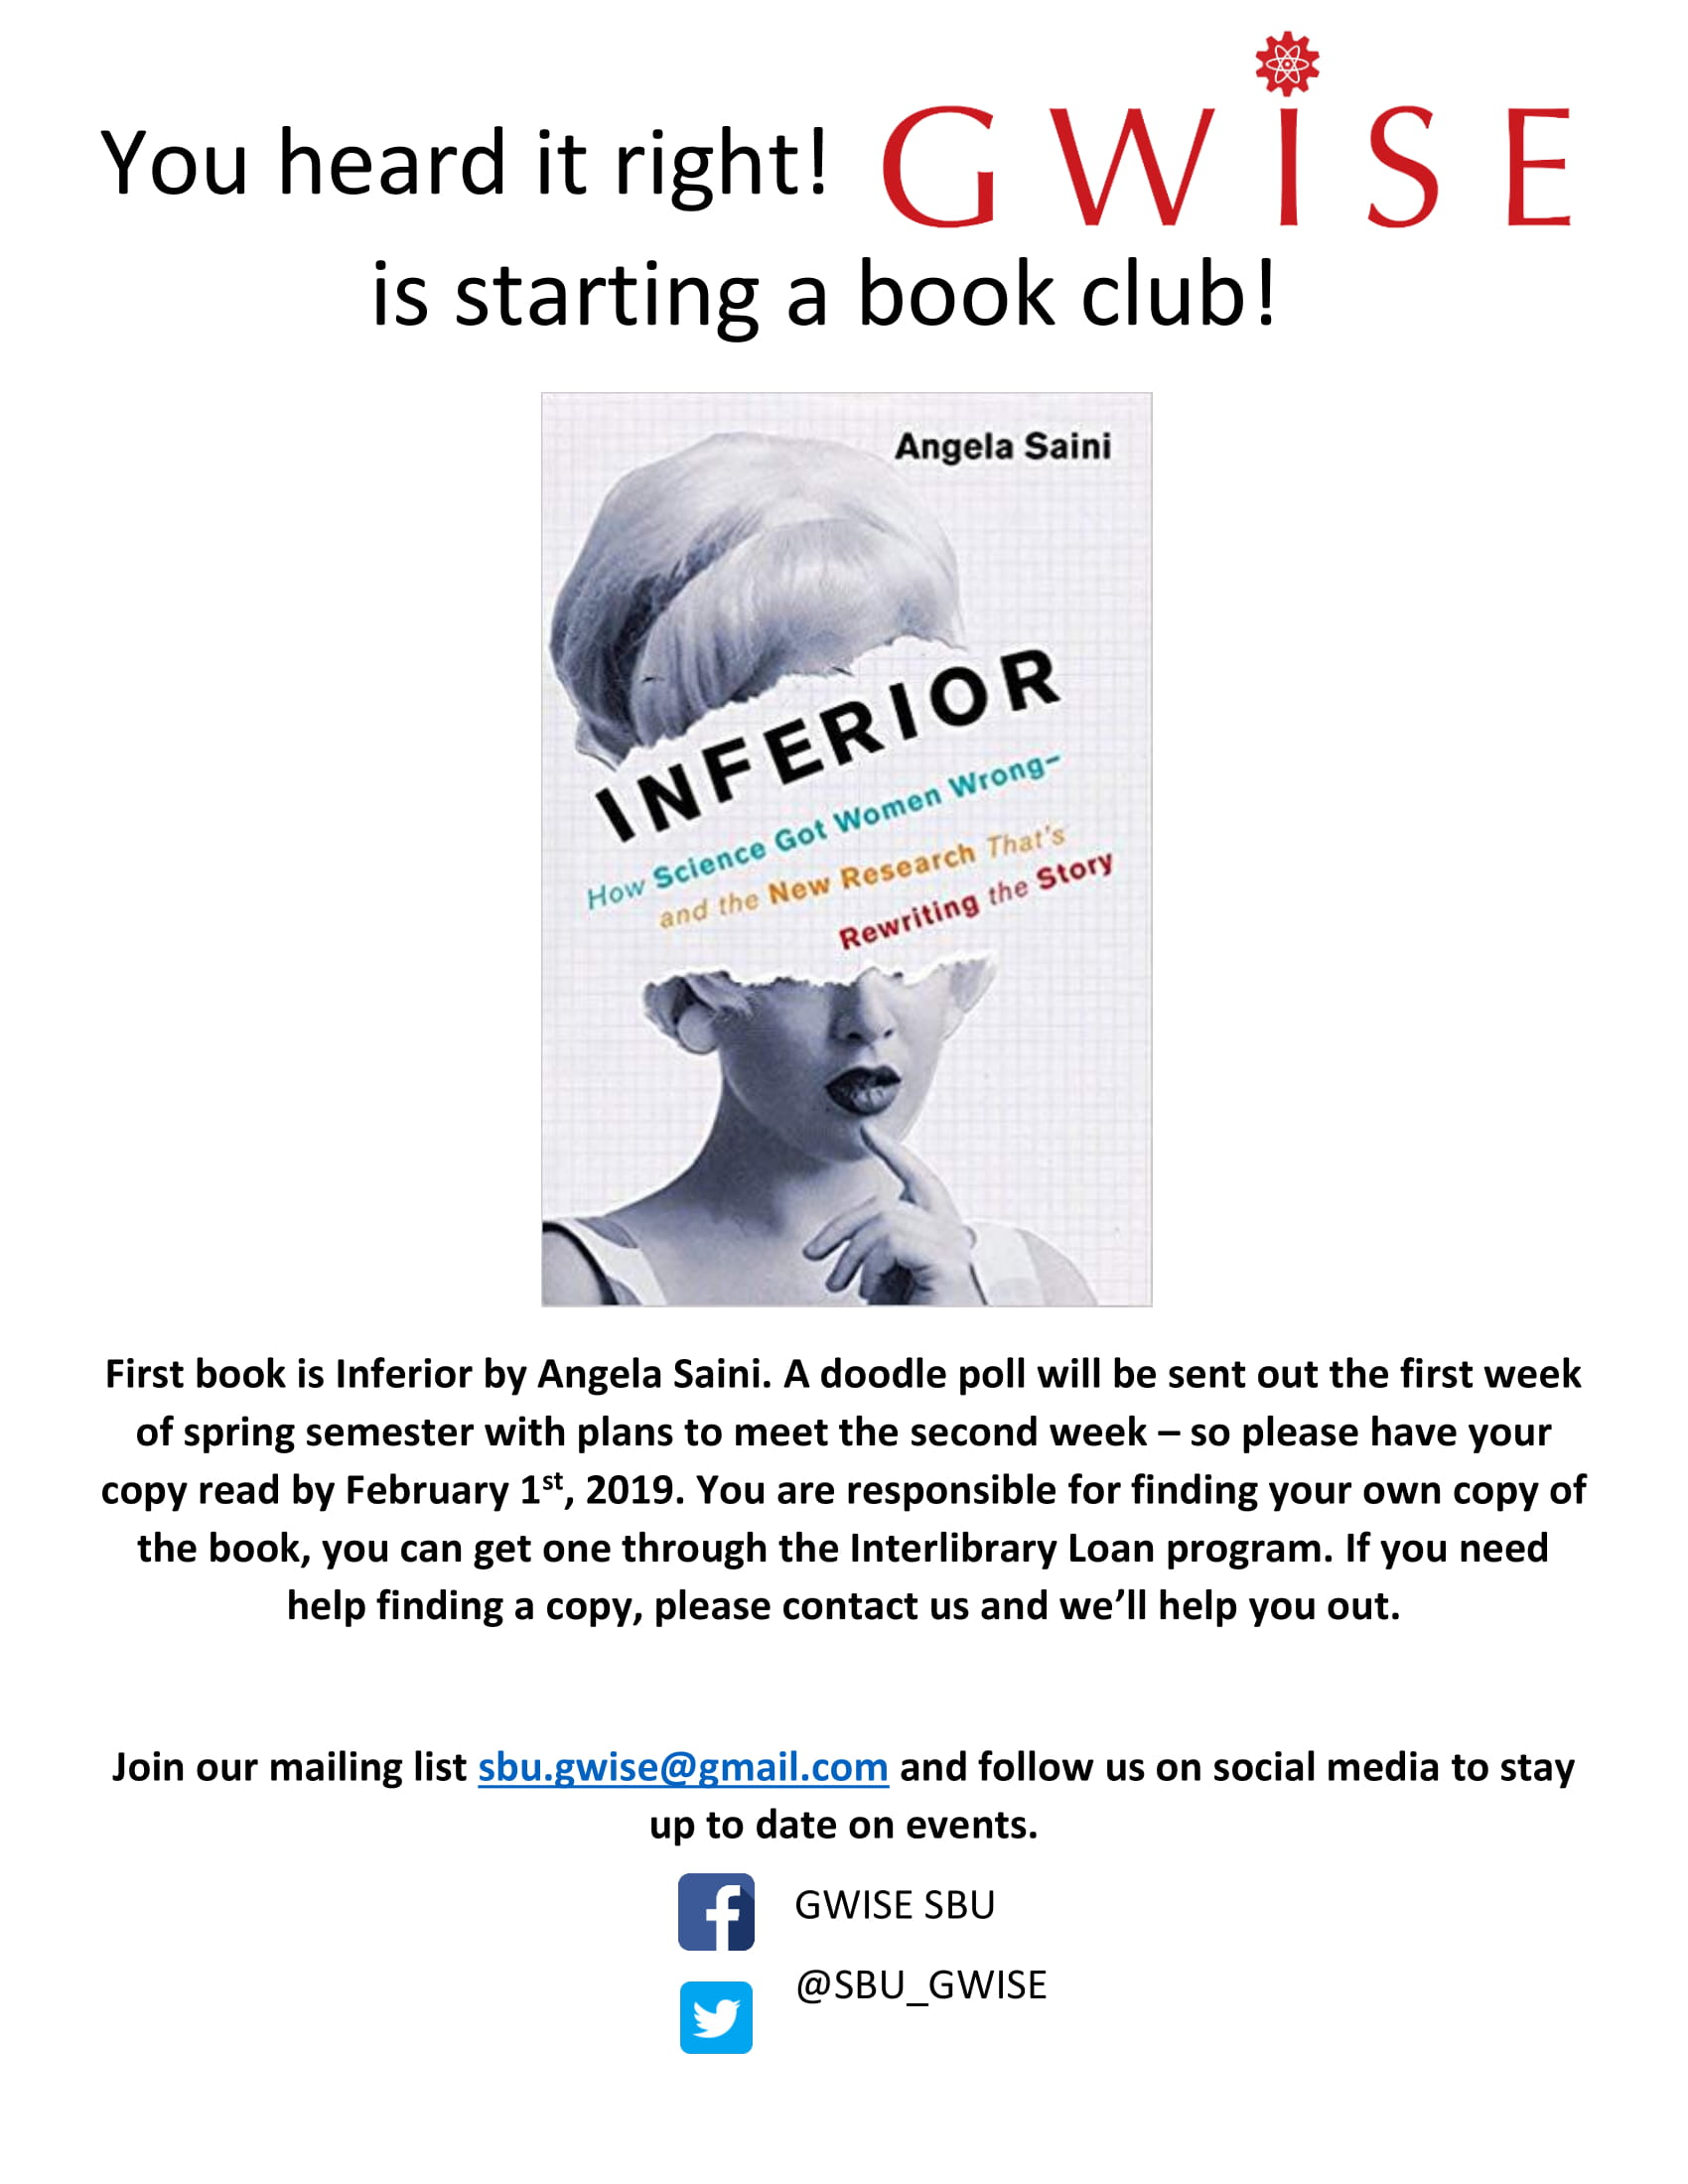 GWiSE is starting a Book Club and you're invited! The first book is Inferior by Angela Saini. A doodle poll will be sent out the first week of spring semester so plan to have your book read by February 1st. Please contact us if you need help finding a book.